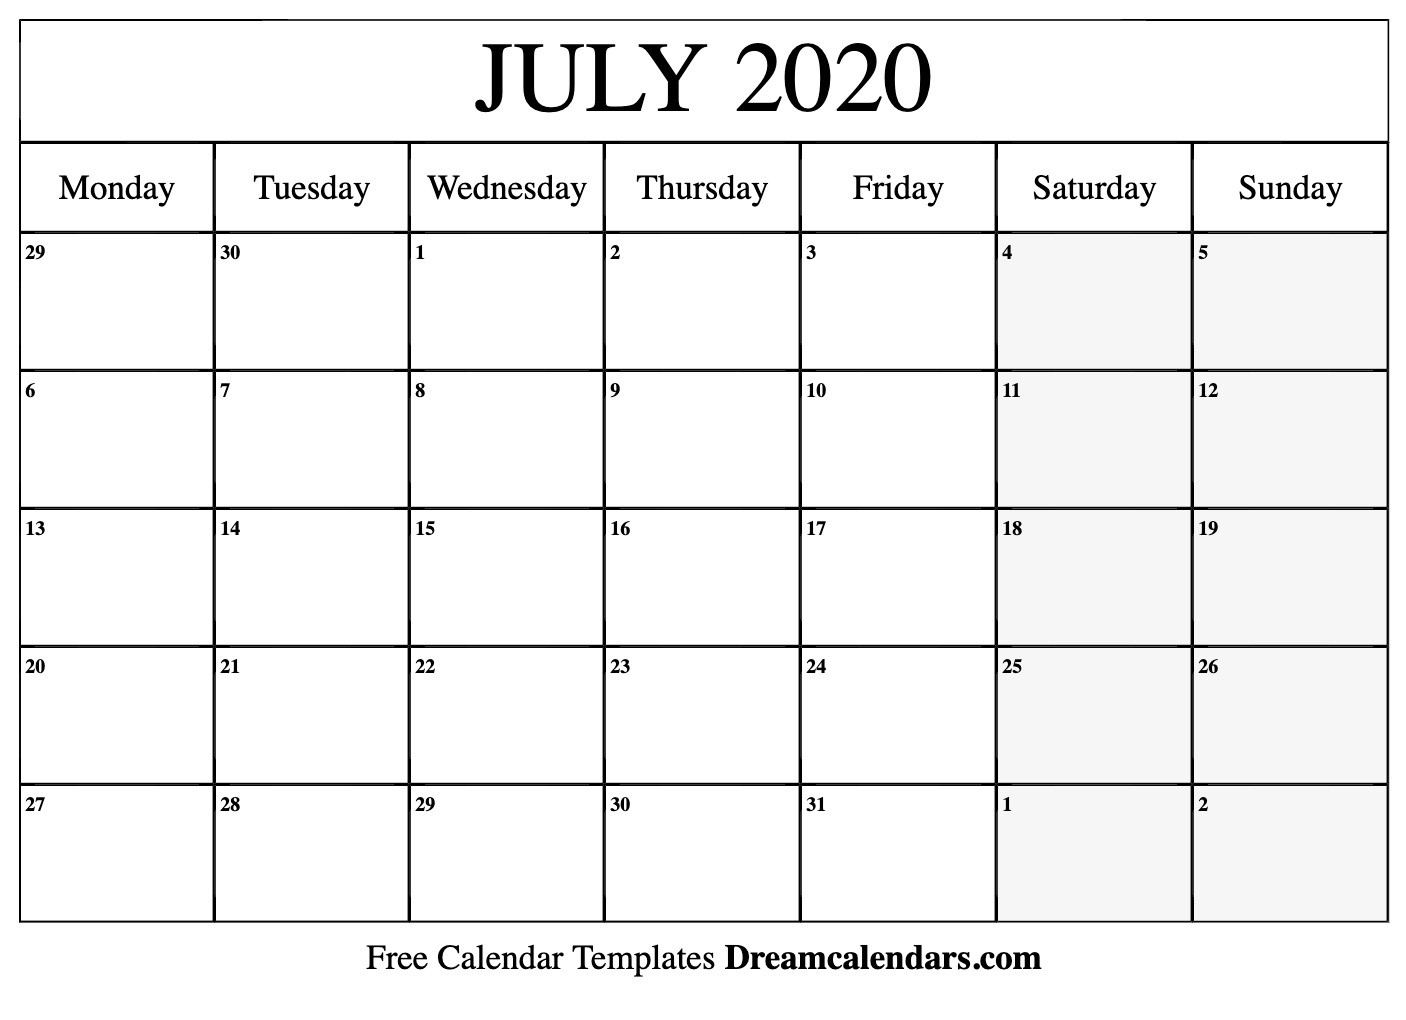 July 2020 Calendar Template Word, Pdf, Excel Format - July-Fillablecalendar Template July 2020